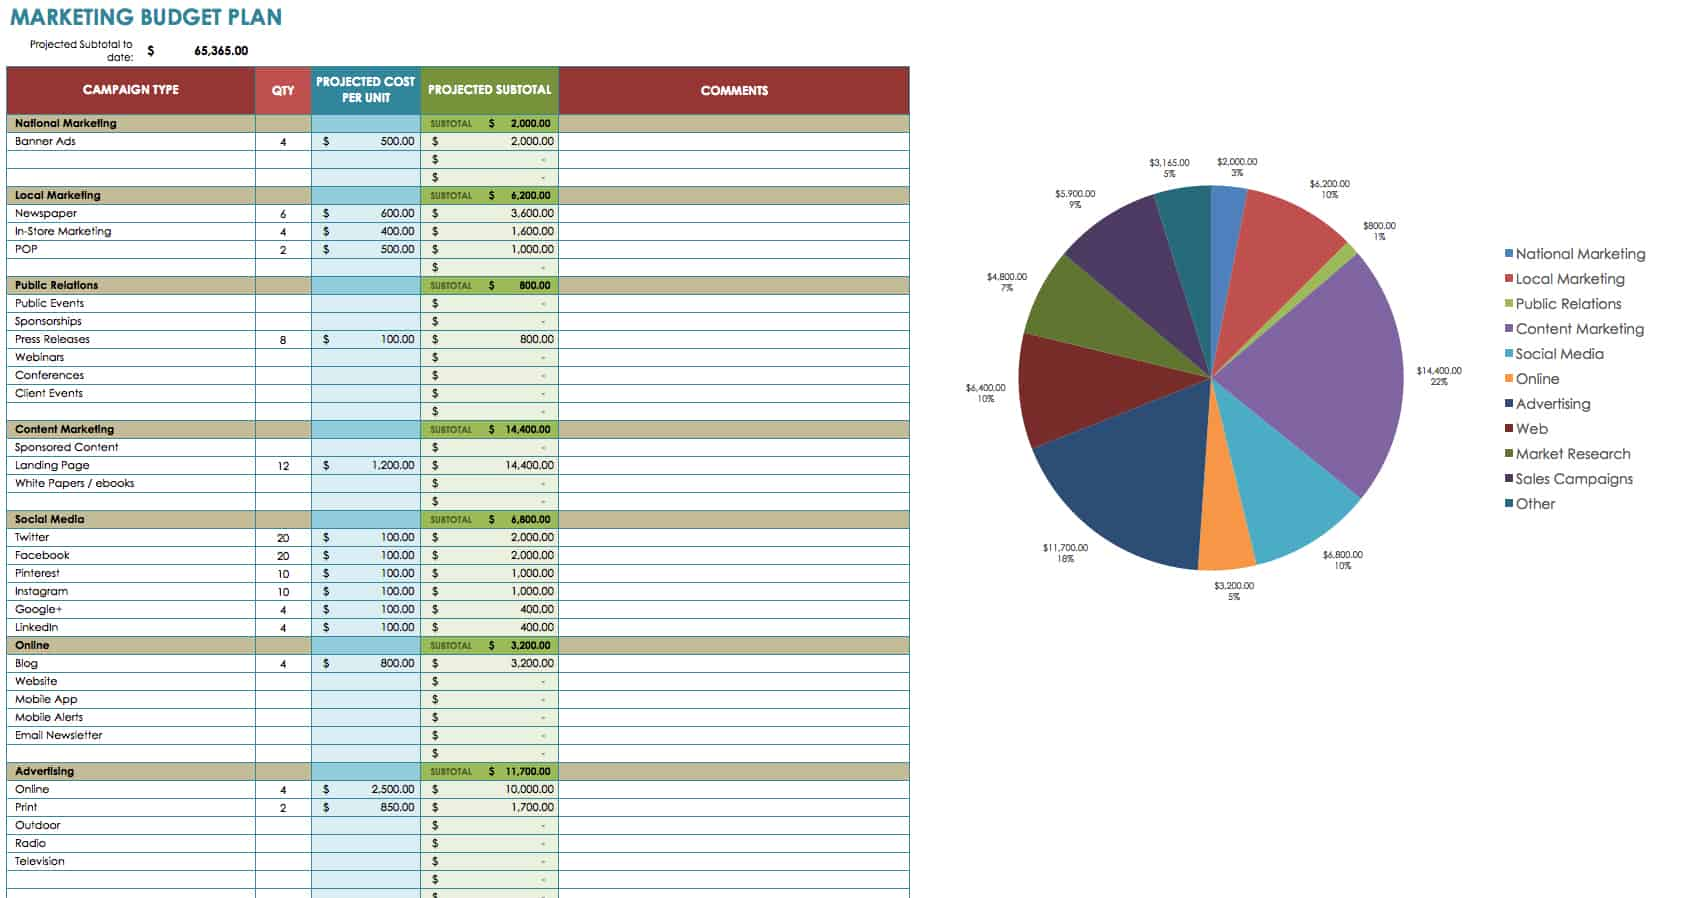 12 marketing budget templates this marketing budget plan template shows itemized categories an estimated cost for each item subtotals for each category and a grand total